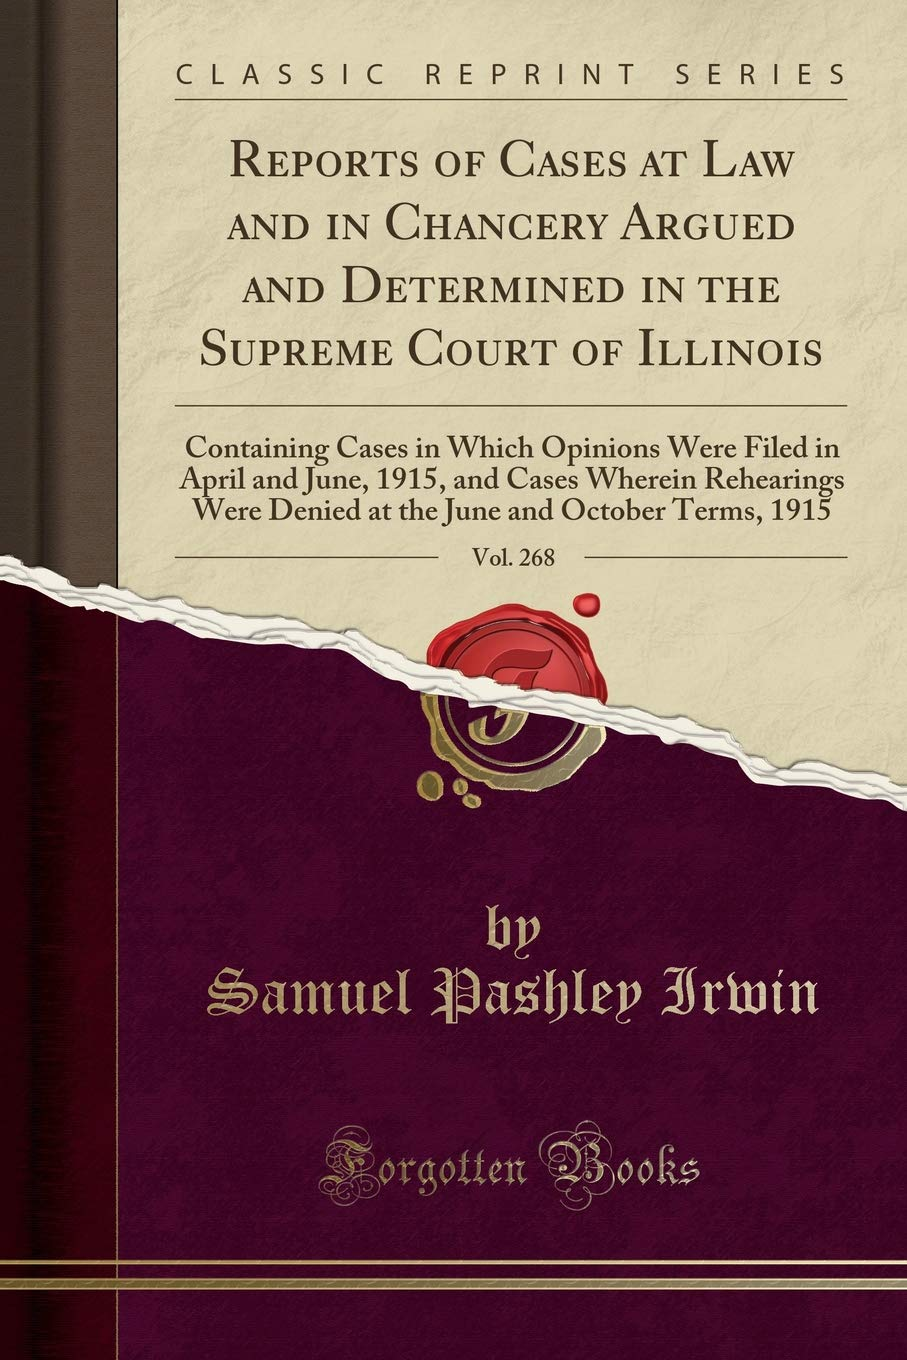 Read Online Reports of Cases at Law and in Chancery Argued and Determined in the Supreme Court of Illinois, Vol. 268: Containing Cases in Which Opinions Were ... Denied at the June and October Terms, 1915 pdf epub